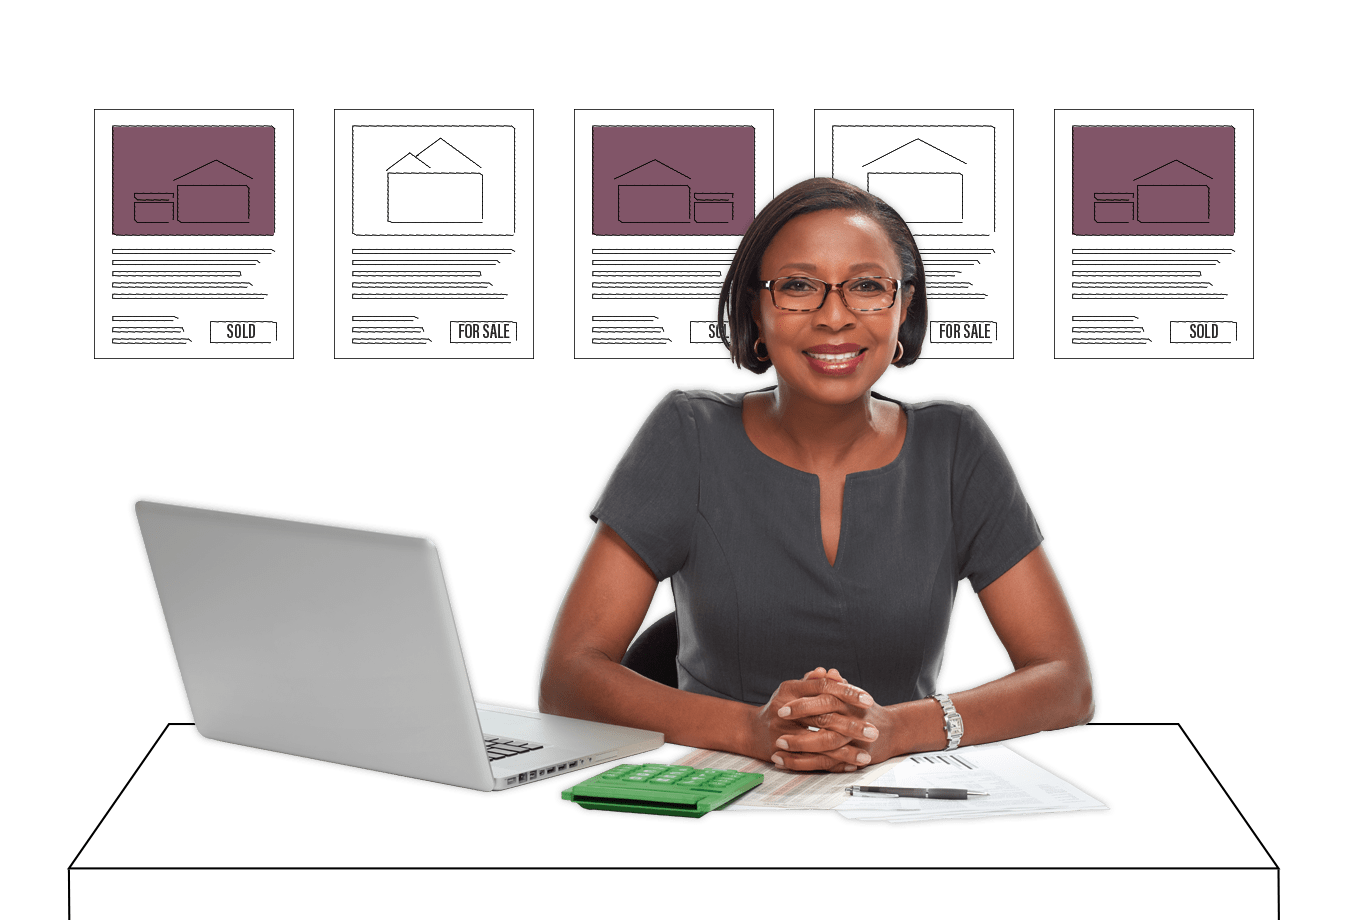 real estate agent insurance illustration of female estate agent sat at desk